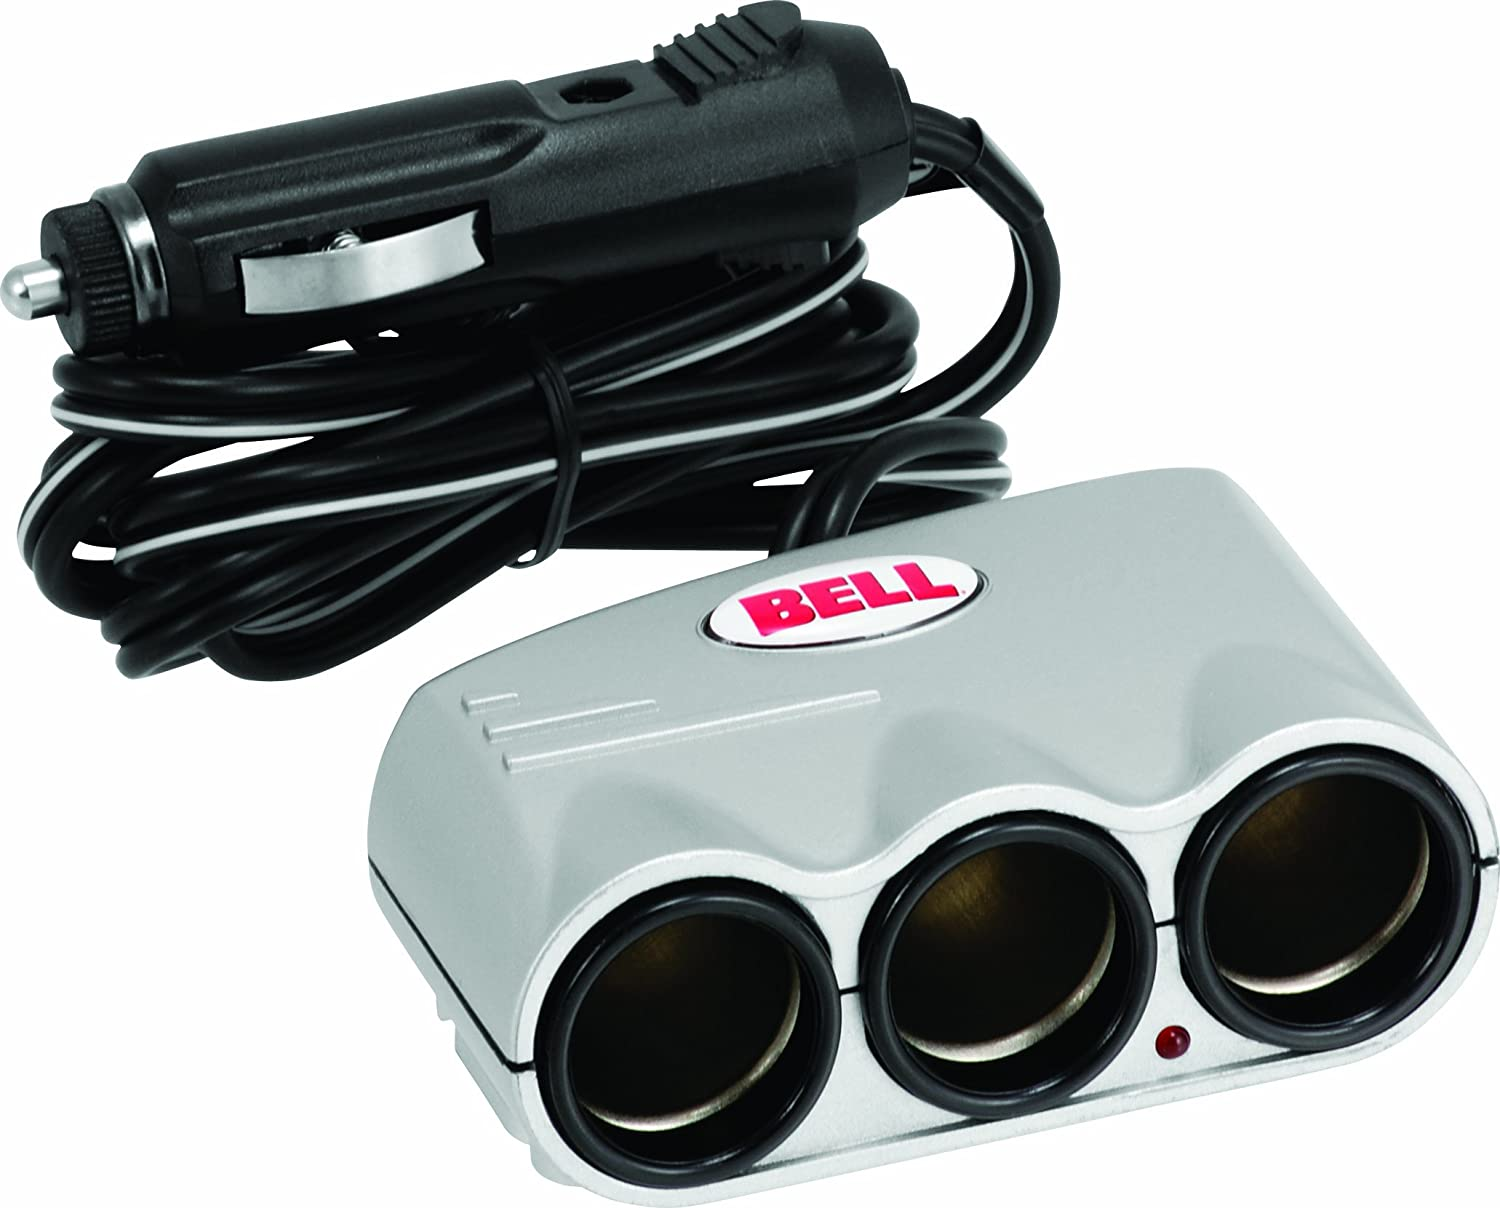 Bell Automotive 22-1-39061-8 Silver Triple Socket with 4 Cord